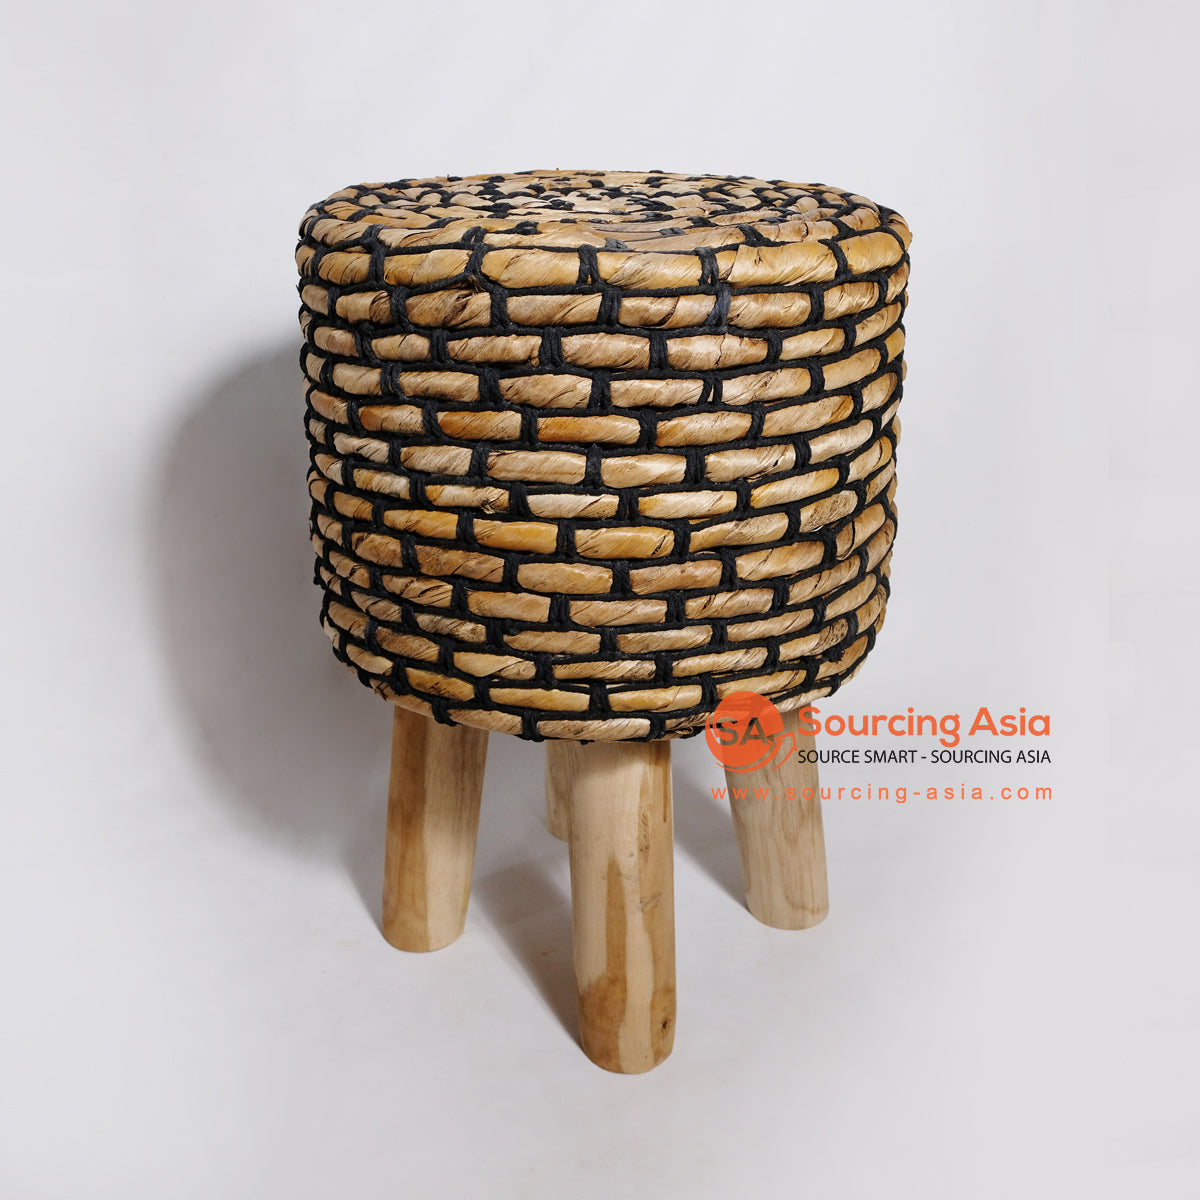 MRC052 WOODEN STOOL WITH BANANA FIBER SEAT